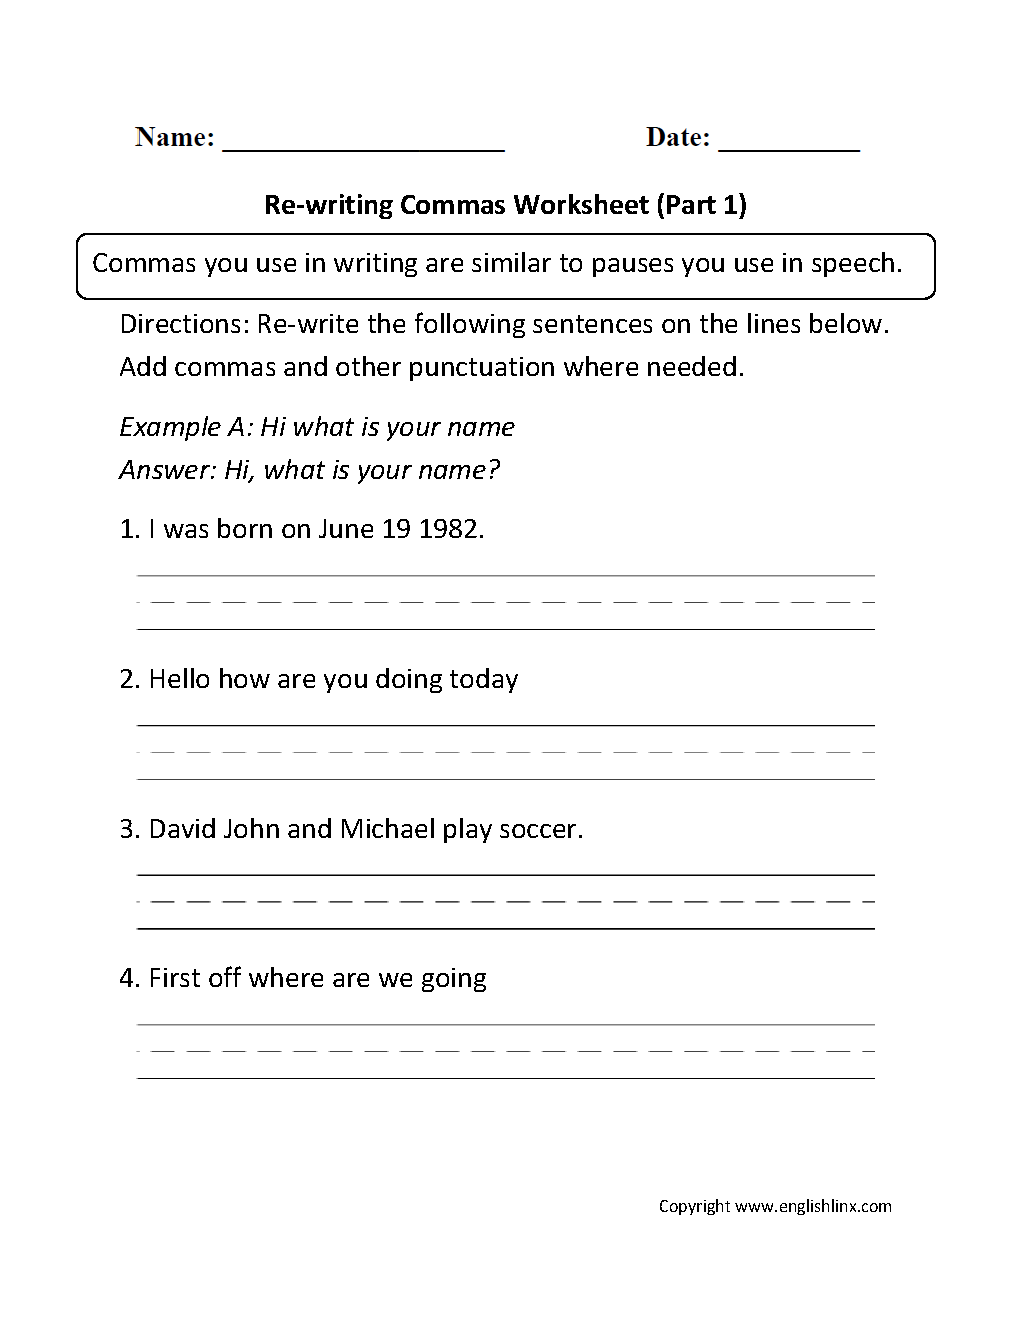 Re-Writing Commas Worksheets Part 1